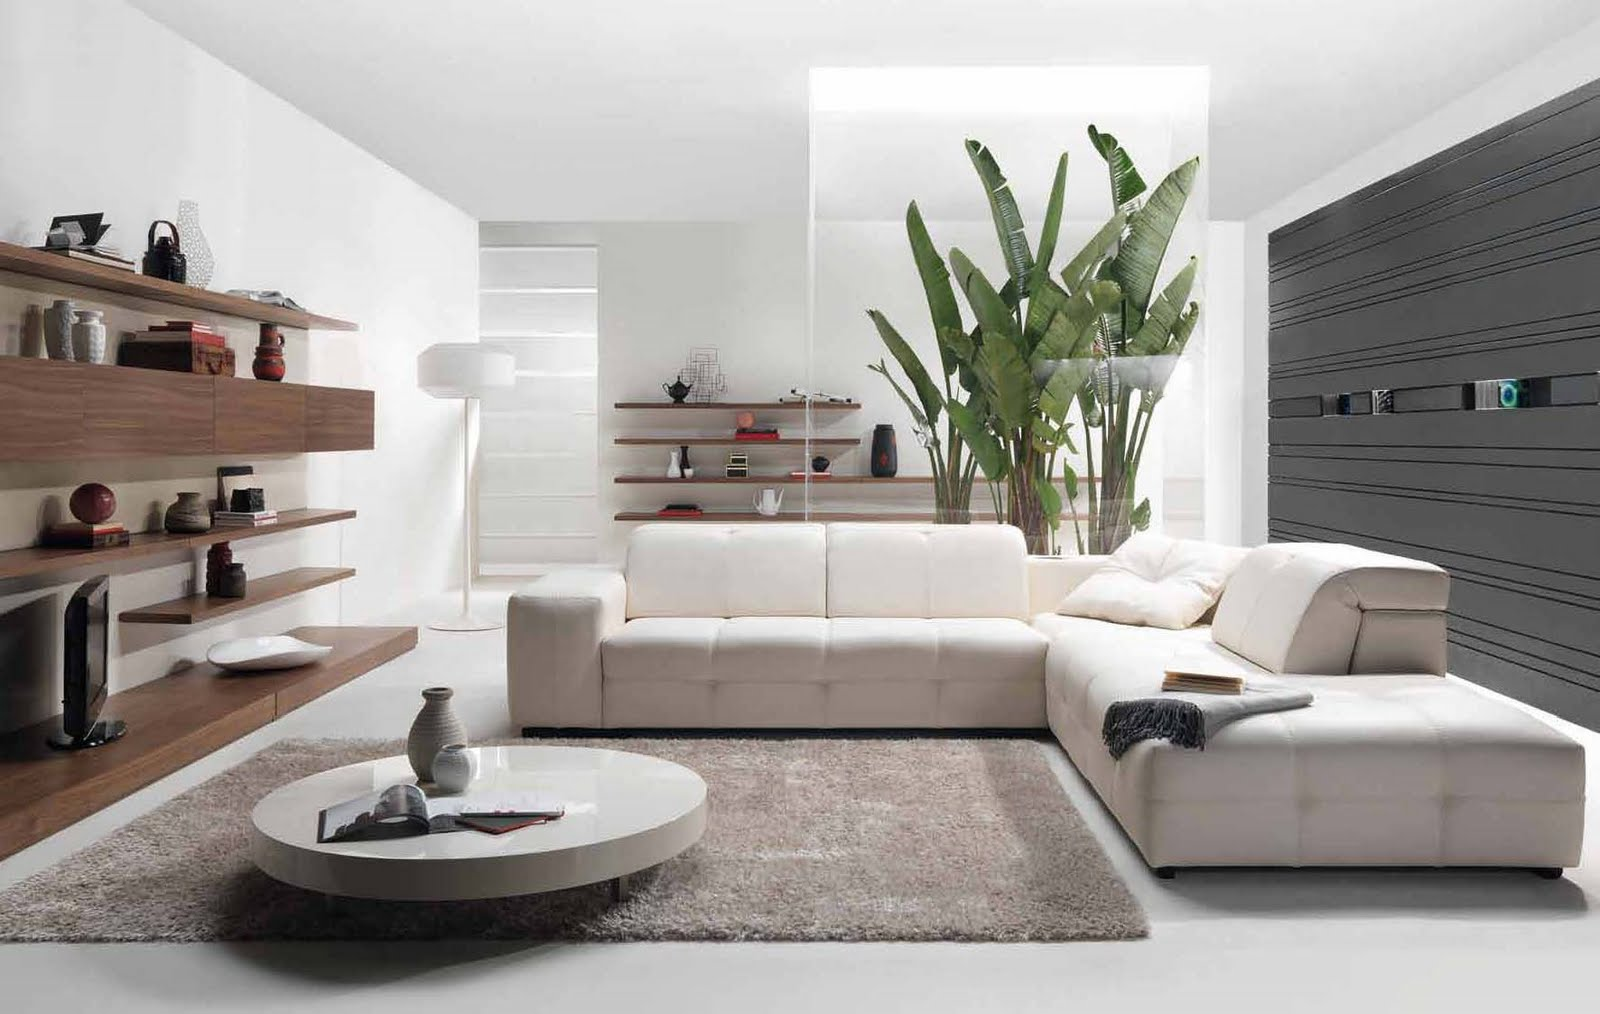 Future house design modern living room interior design for New style living room design